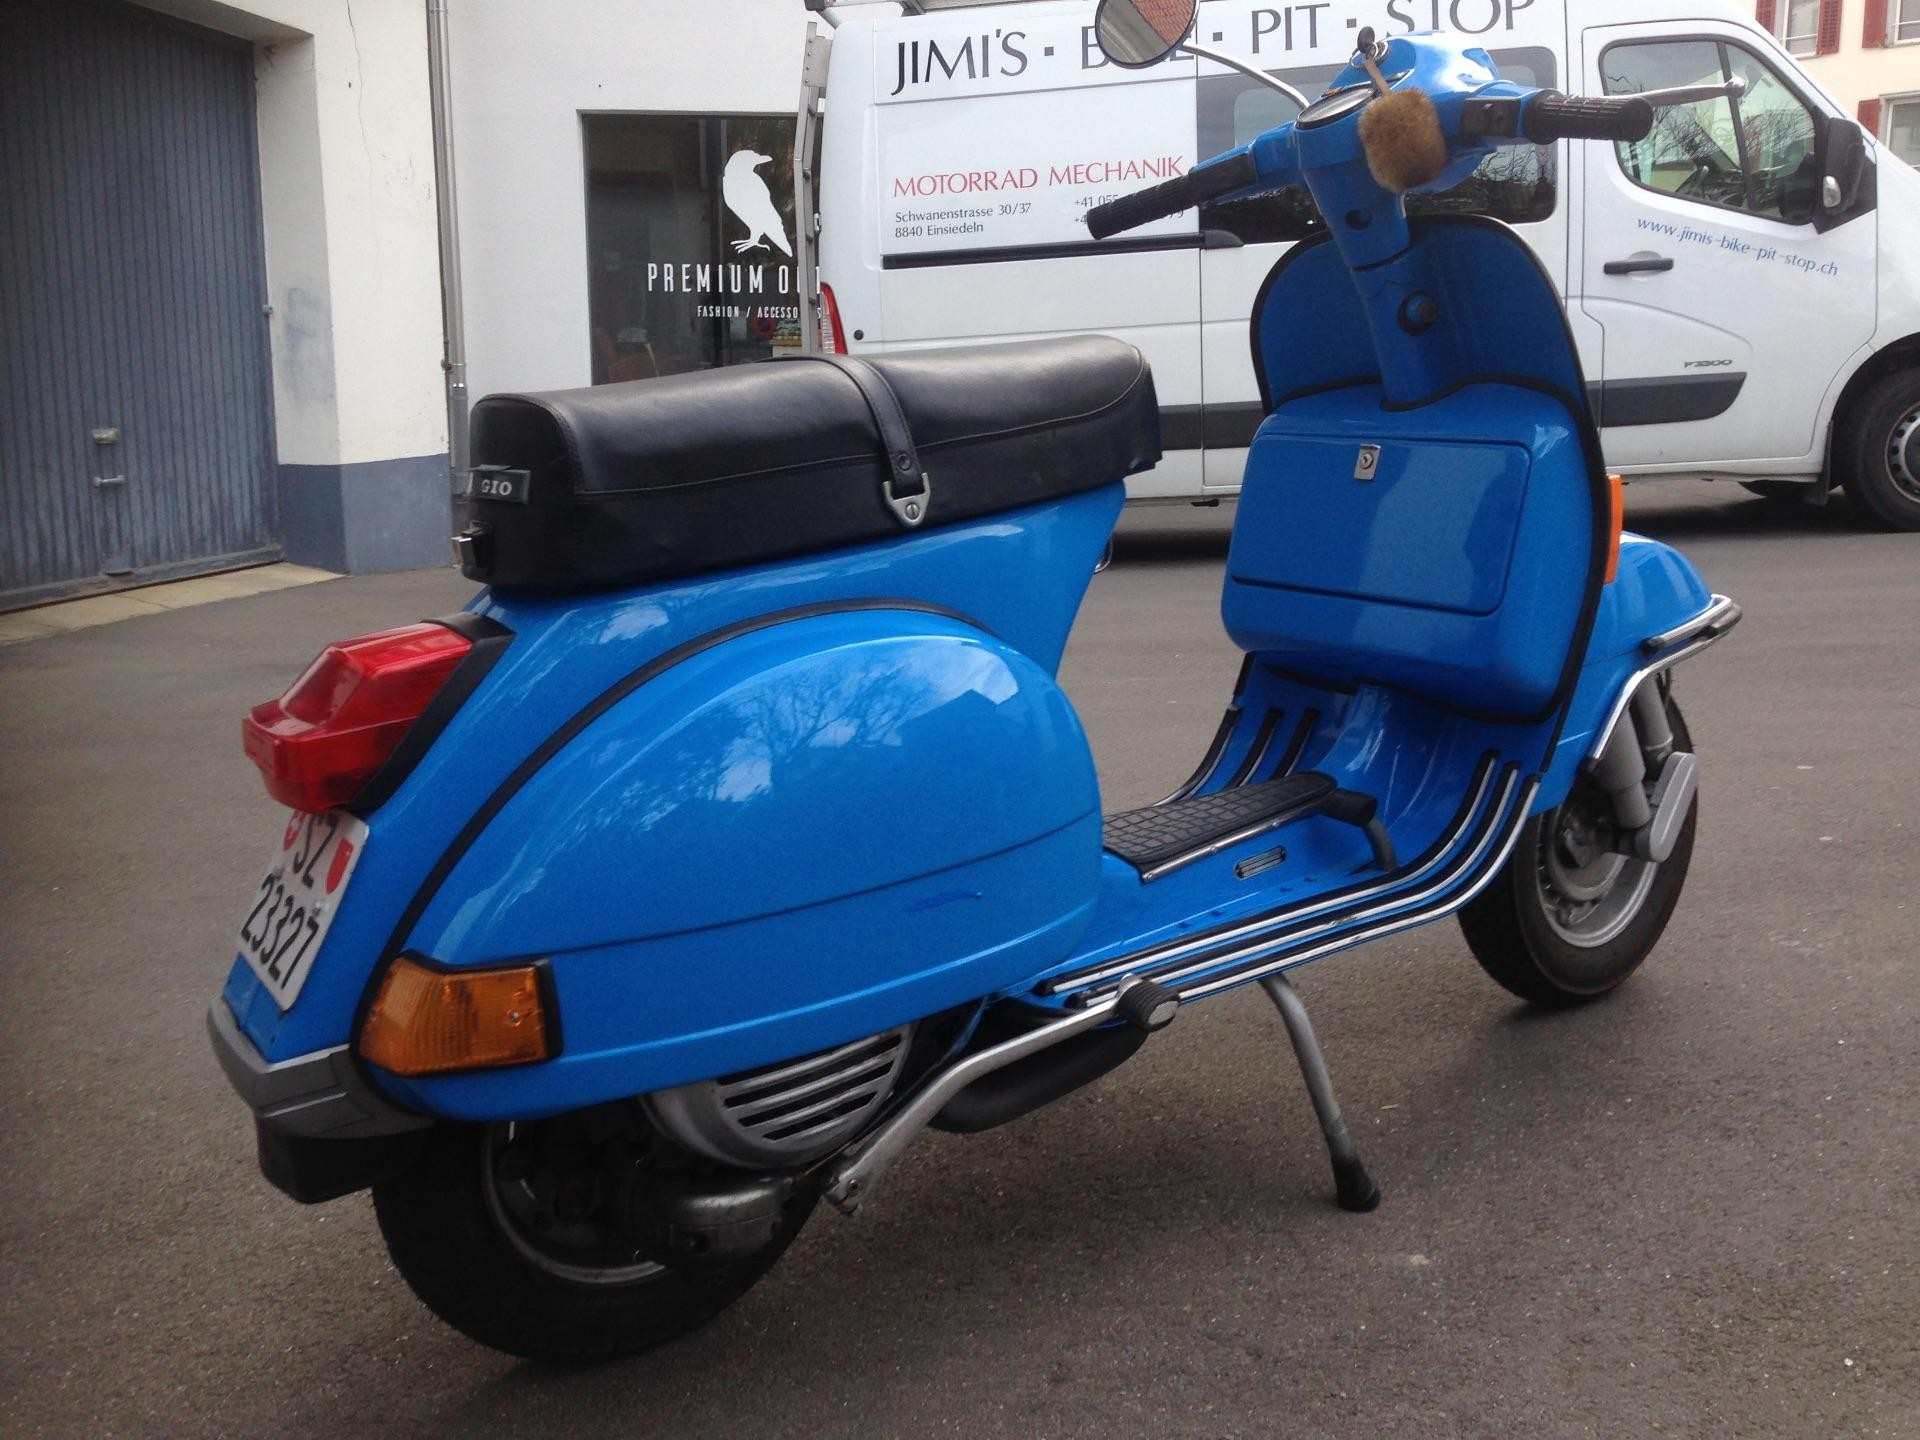 motorrad oldtimer kaufen vespa piaggio vnx vespa px jimi 39 s bike pit stop einsiedeln. Black Bedroom Furniture Sets. Home Design Ideas